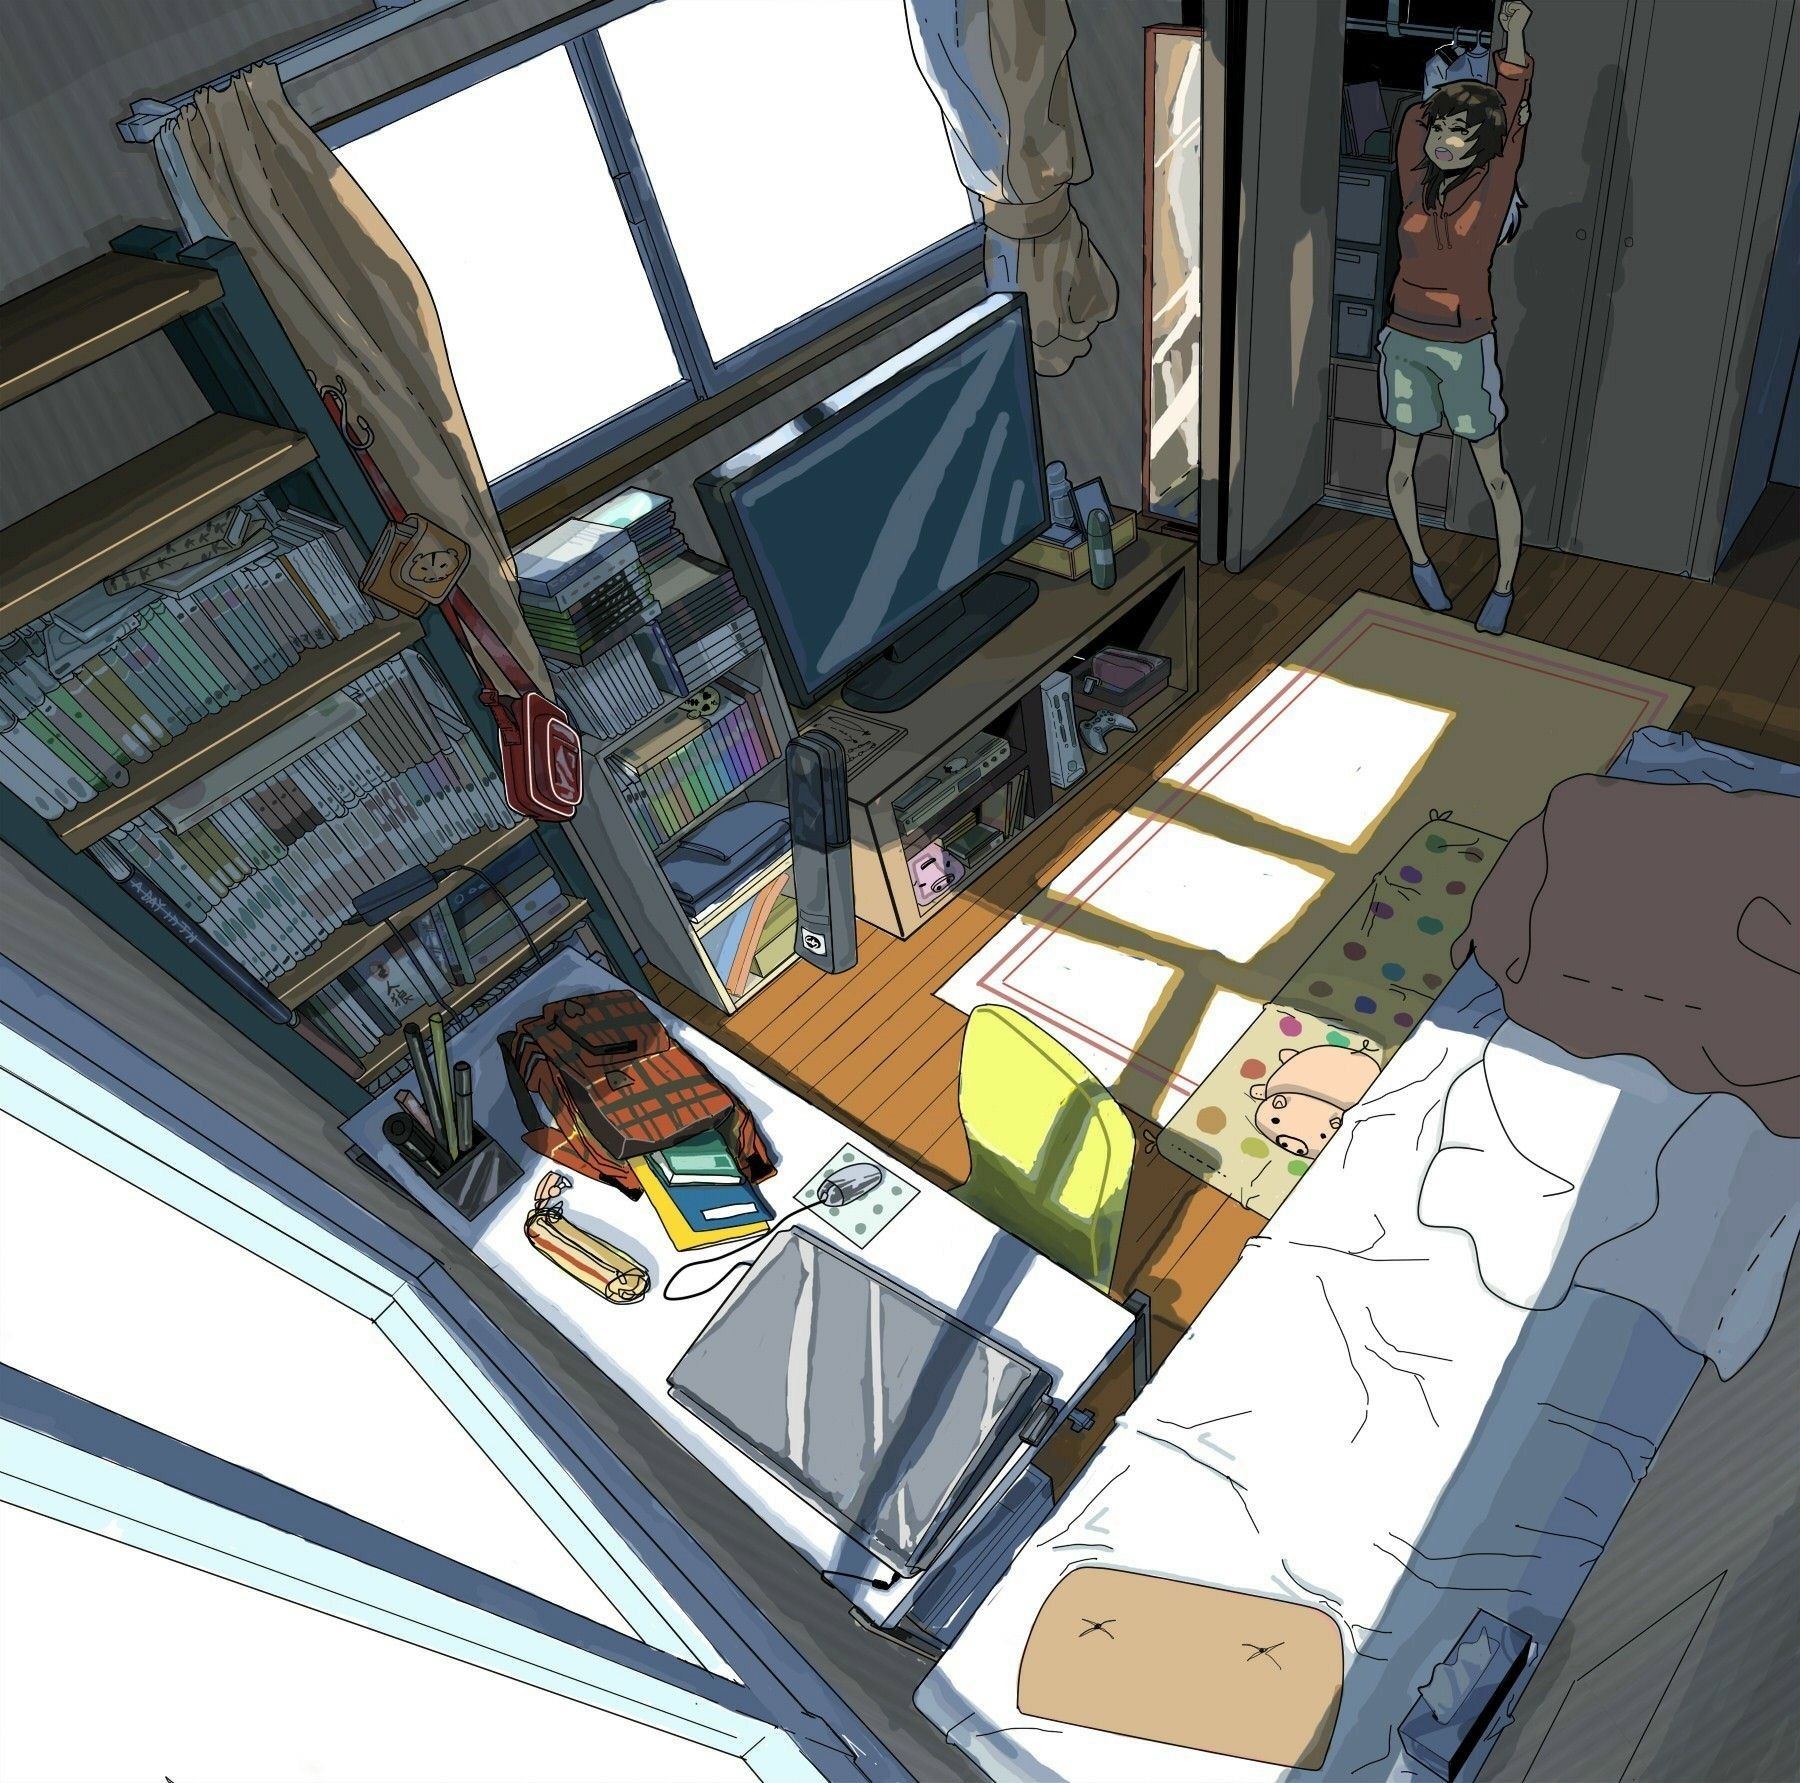 ANIME ART anime scenery. . .bedroom. . .amazing detail. . .bed. . .shelves. . .books ...